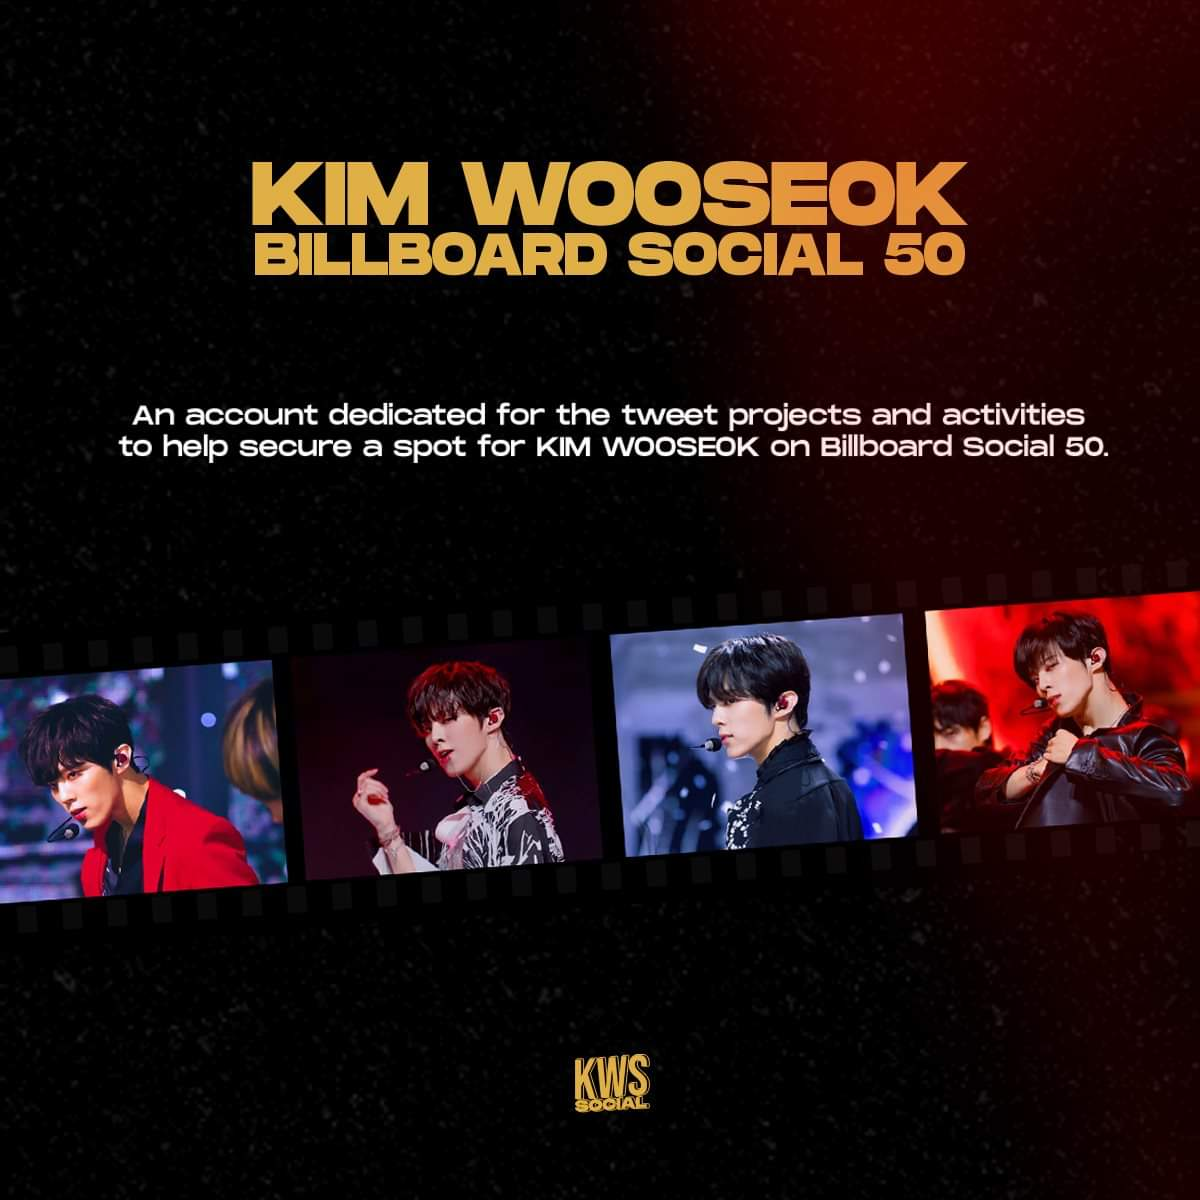 Hello! This is KWS Social! This account is dedicated to help secure a spot for Kim Wooseok on Billboard Social 50. Help us join our project daily by tagging @KWS_official_ and using the hashtag #KIMWOOSEOK  Let's make it happen! 💕 https://t.co/KzlIr3KEqV